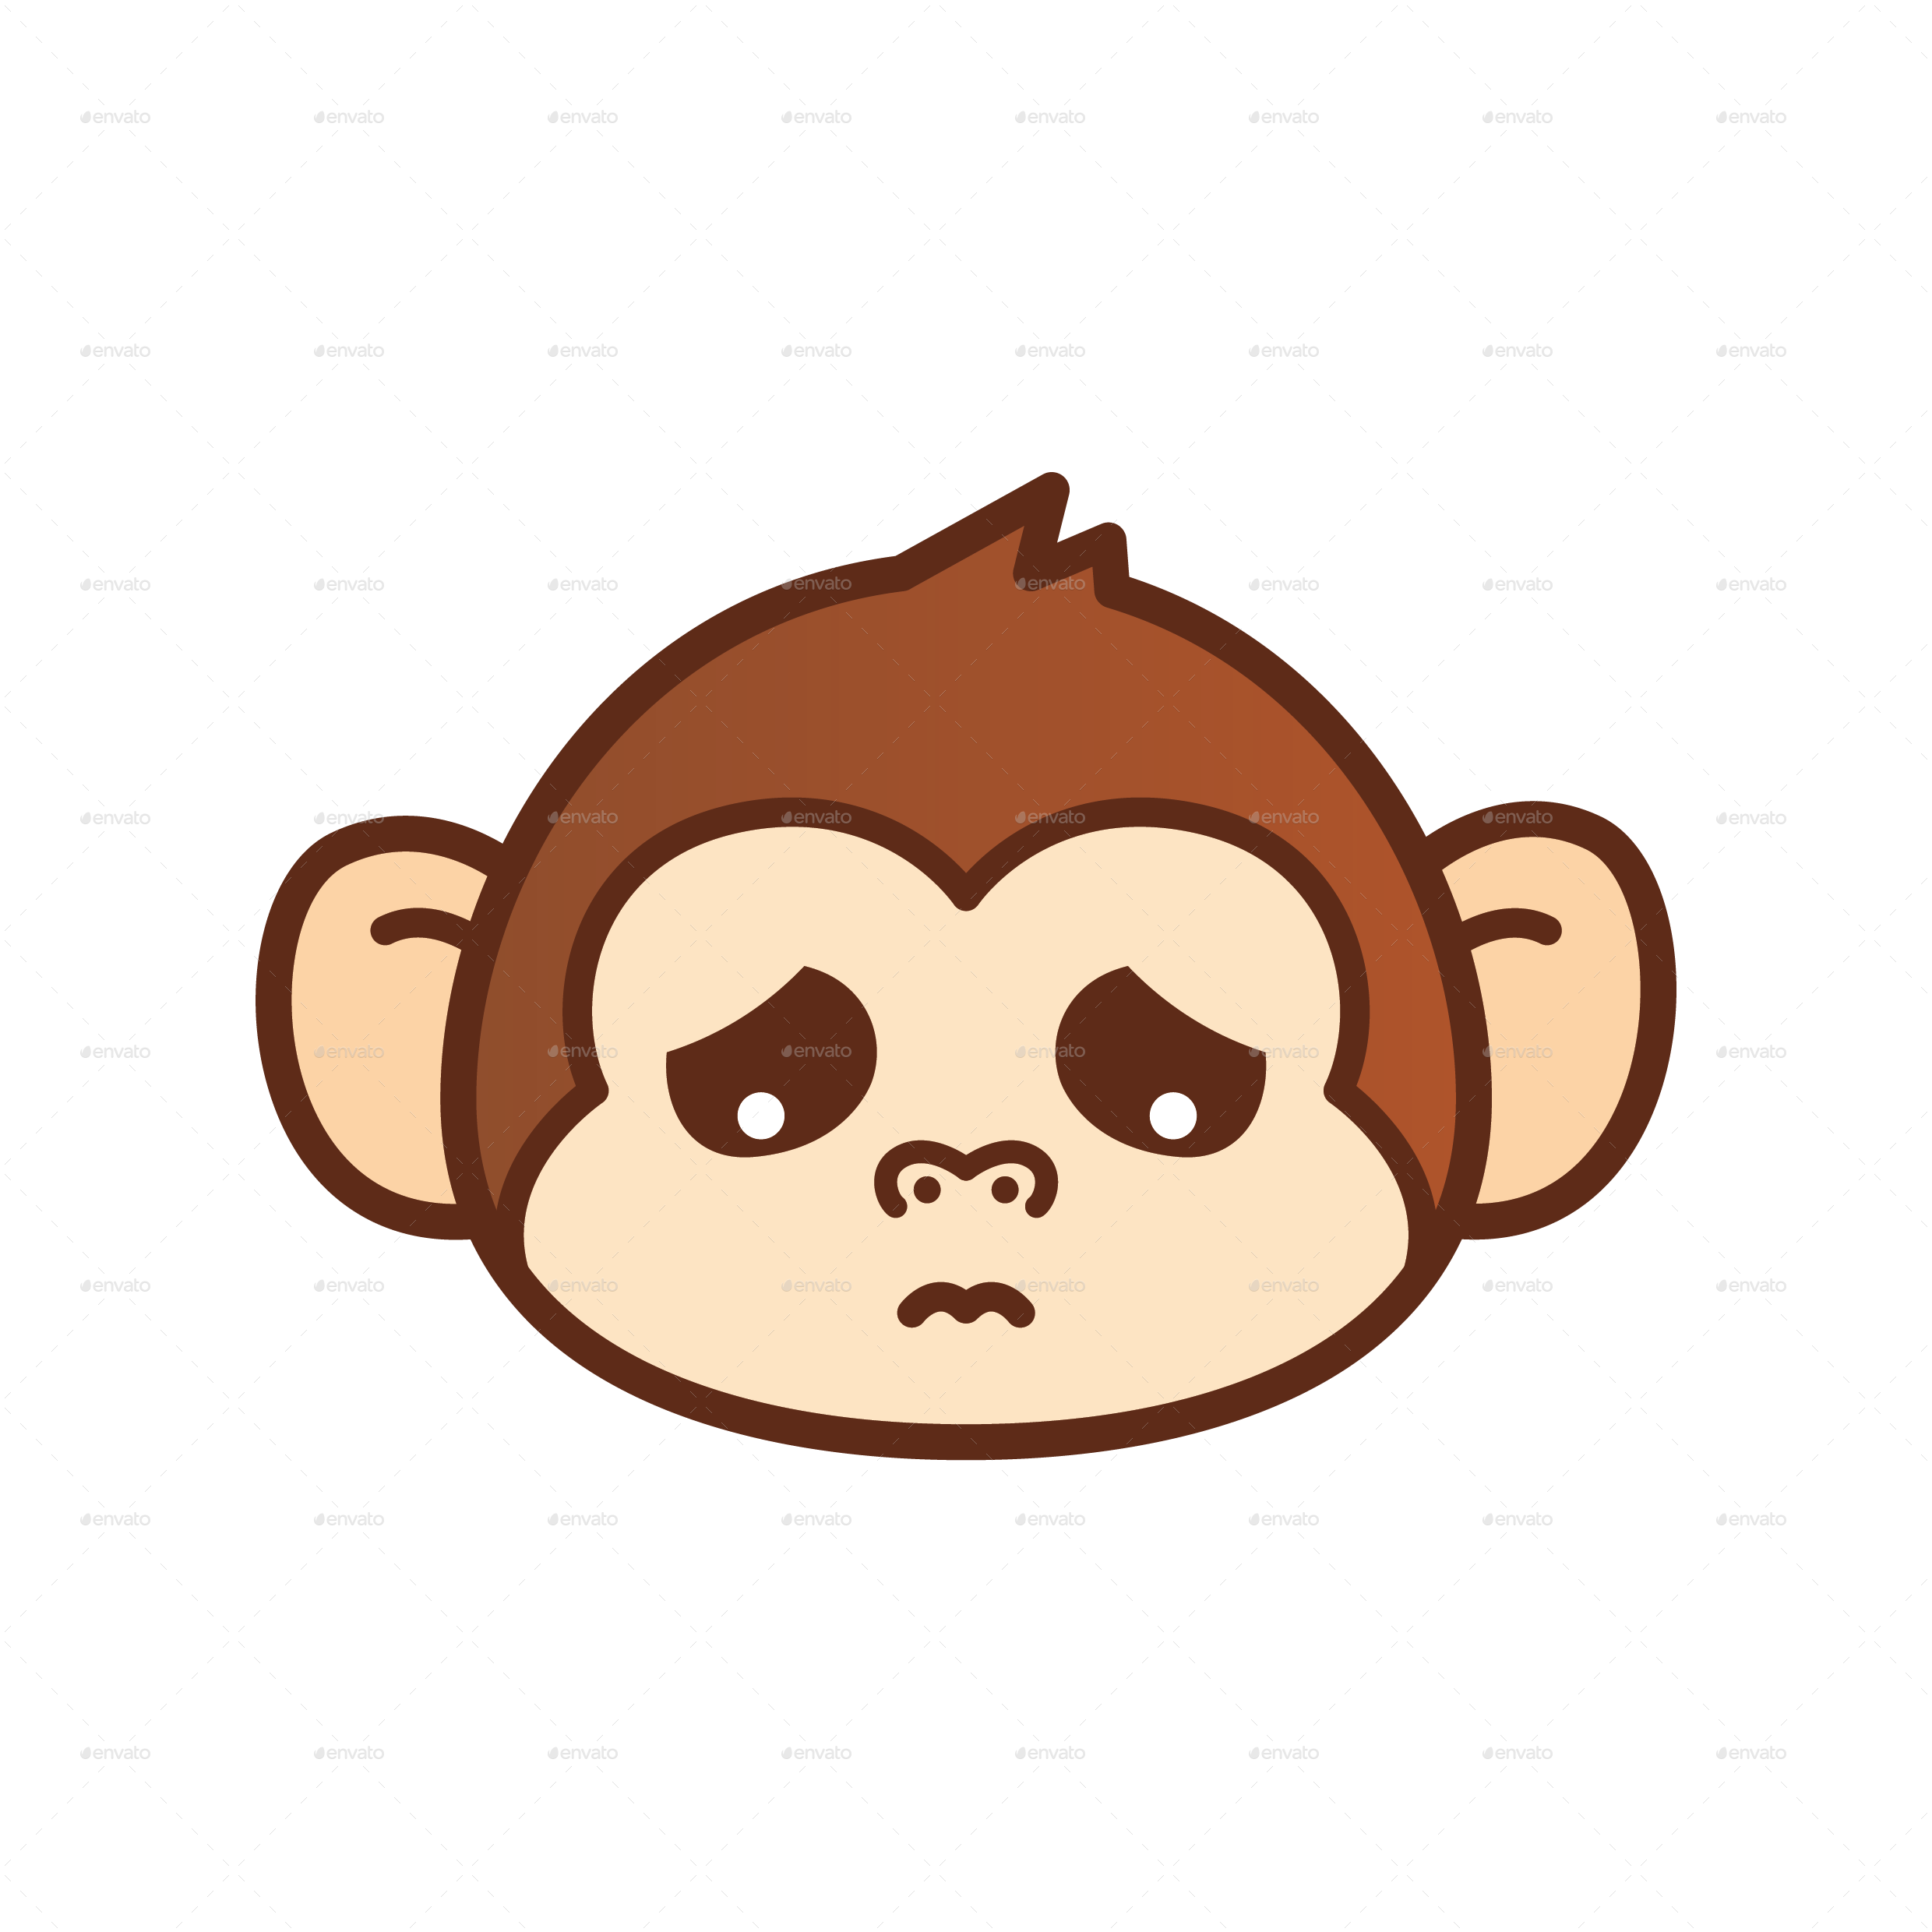 svg black and white download Ape clipart monky. Cute monkey emoticon by